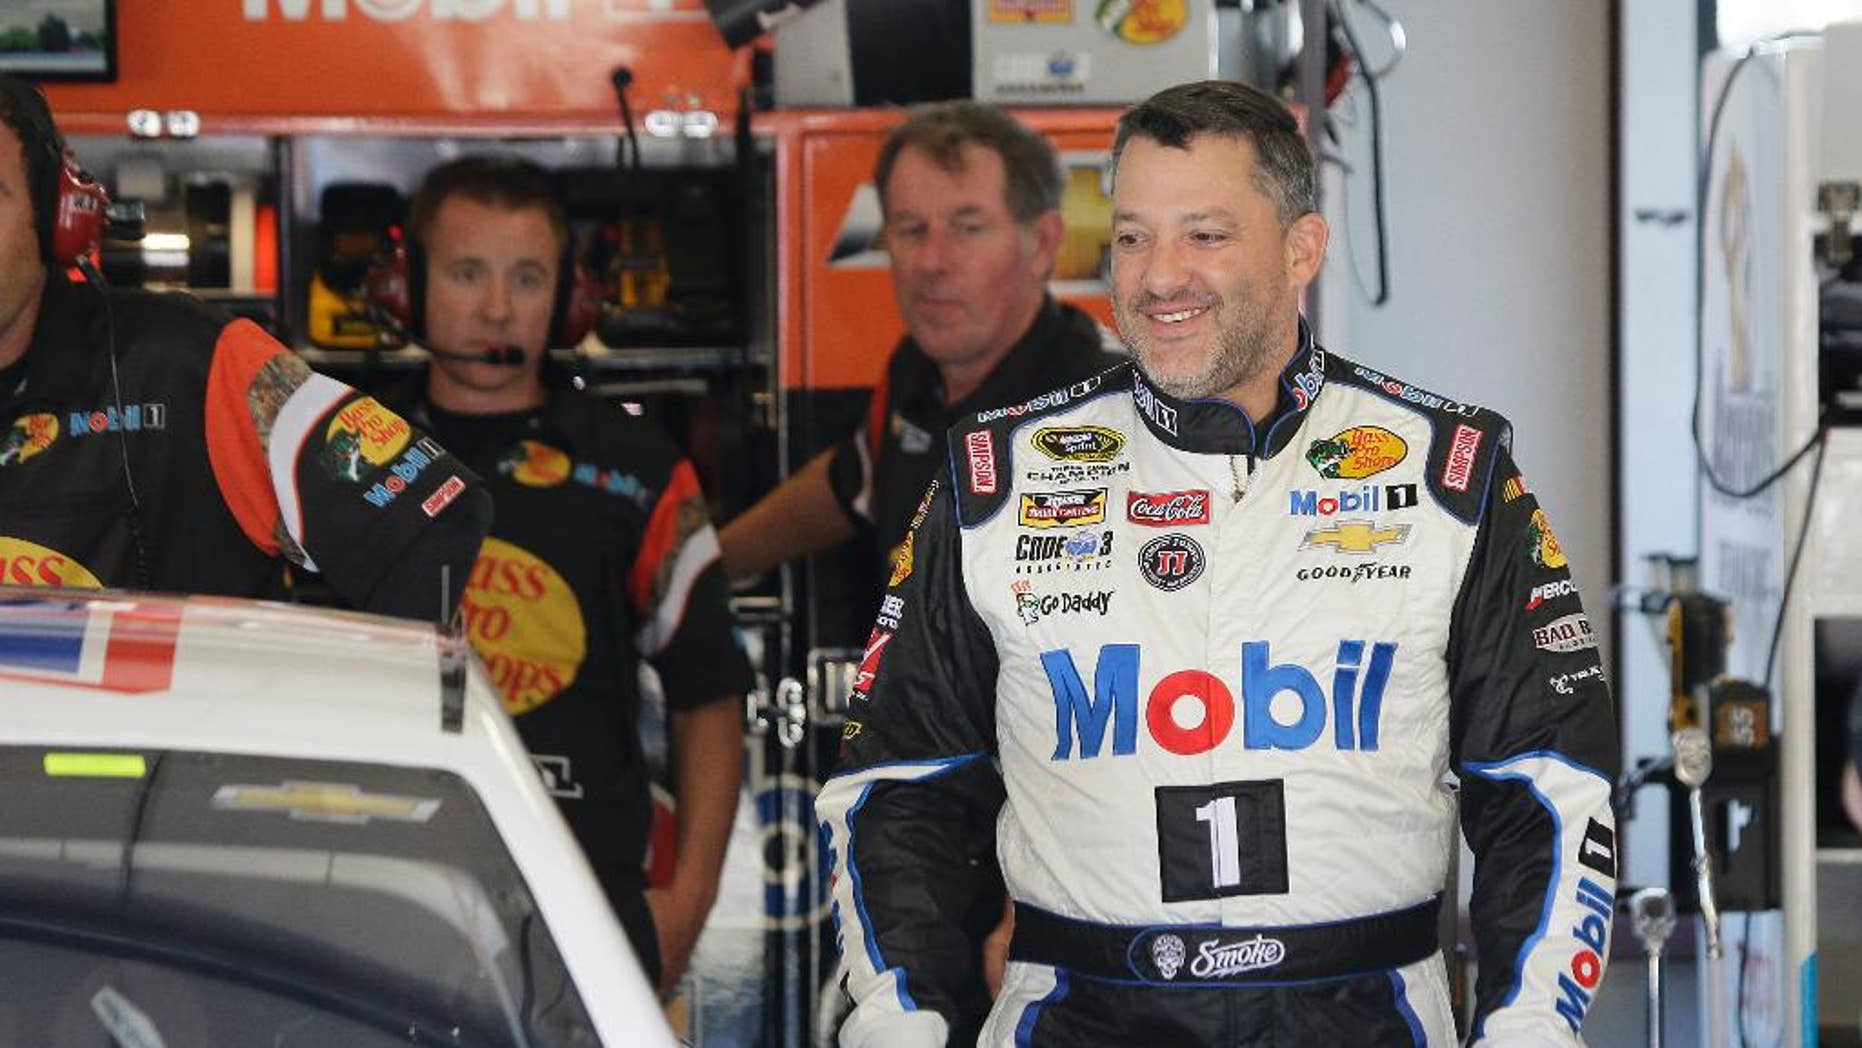 Tony Stewart walks to his car during practice for the NASCAR Sprint Cup Series auto race Friday, June 26, 2015, in Sonoma, Calif. (AP Photo/Eric Risberg)